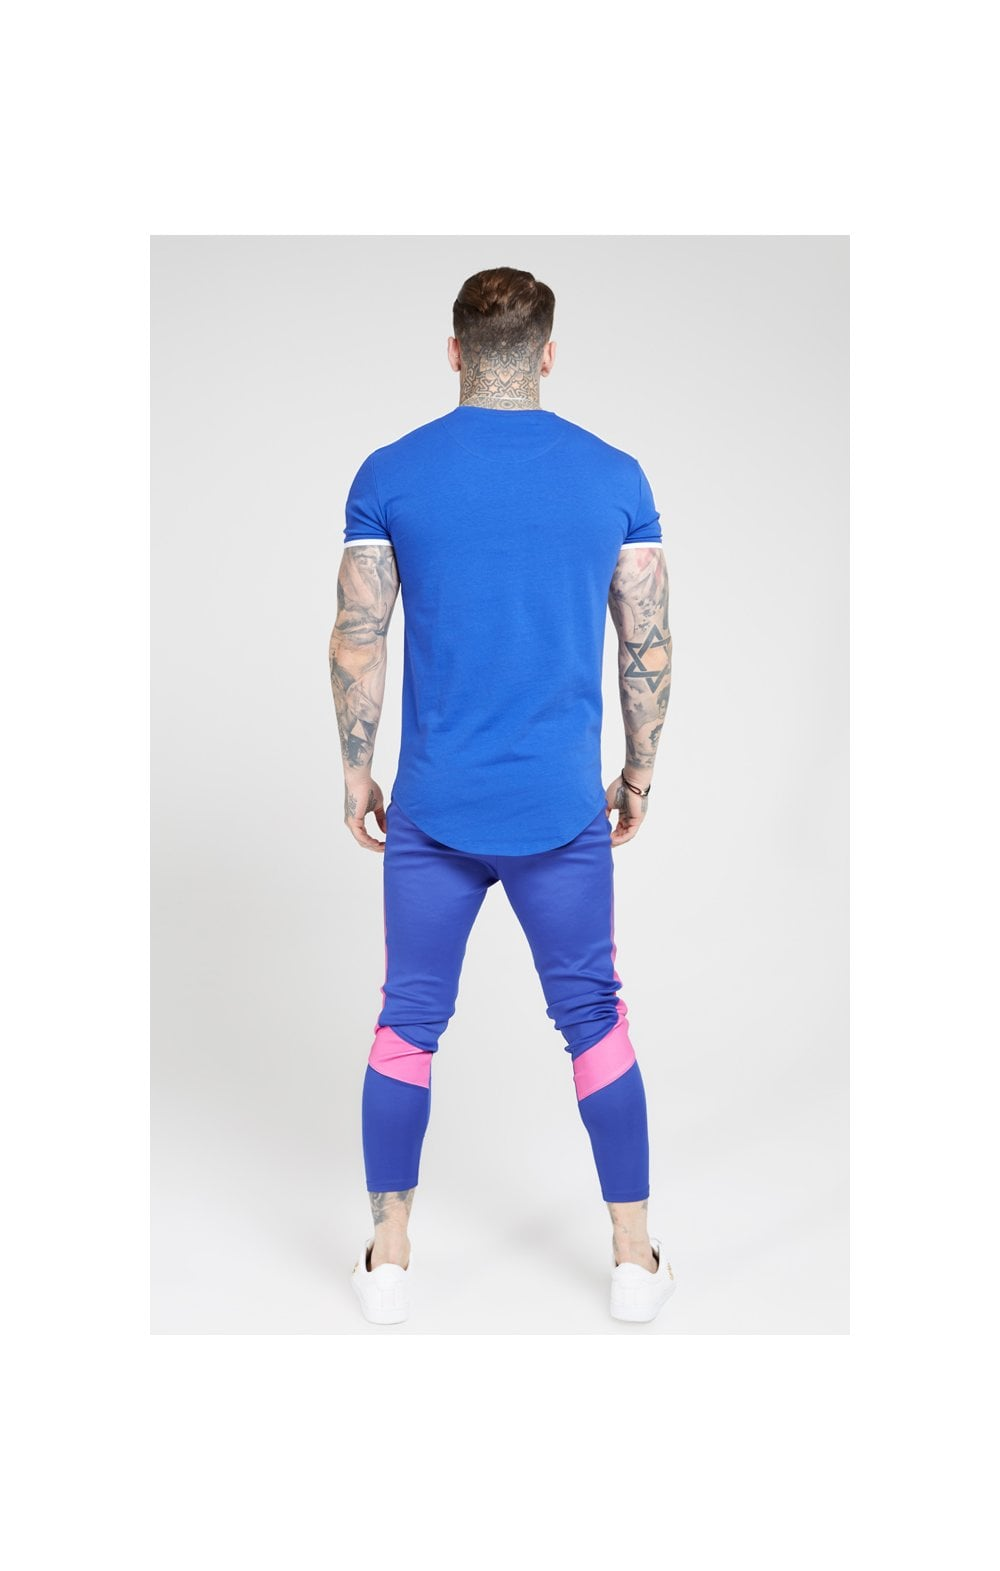 Load image into Gallery viewer, SikSilk S/S Panel Gym Tee - Neon Blue & White (4)